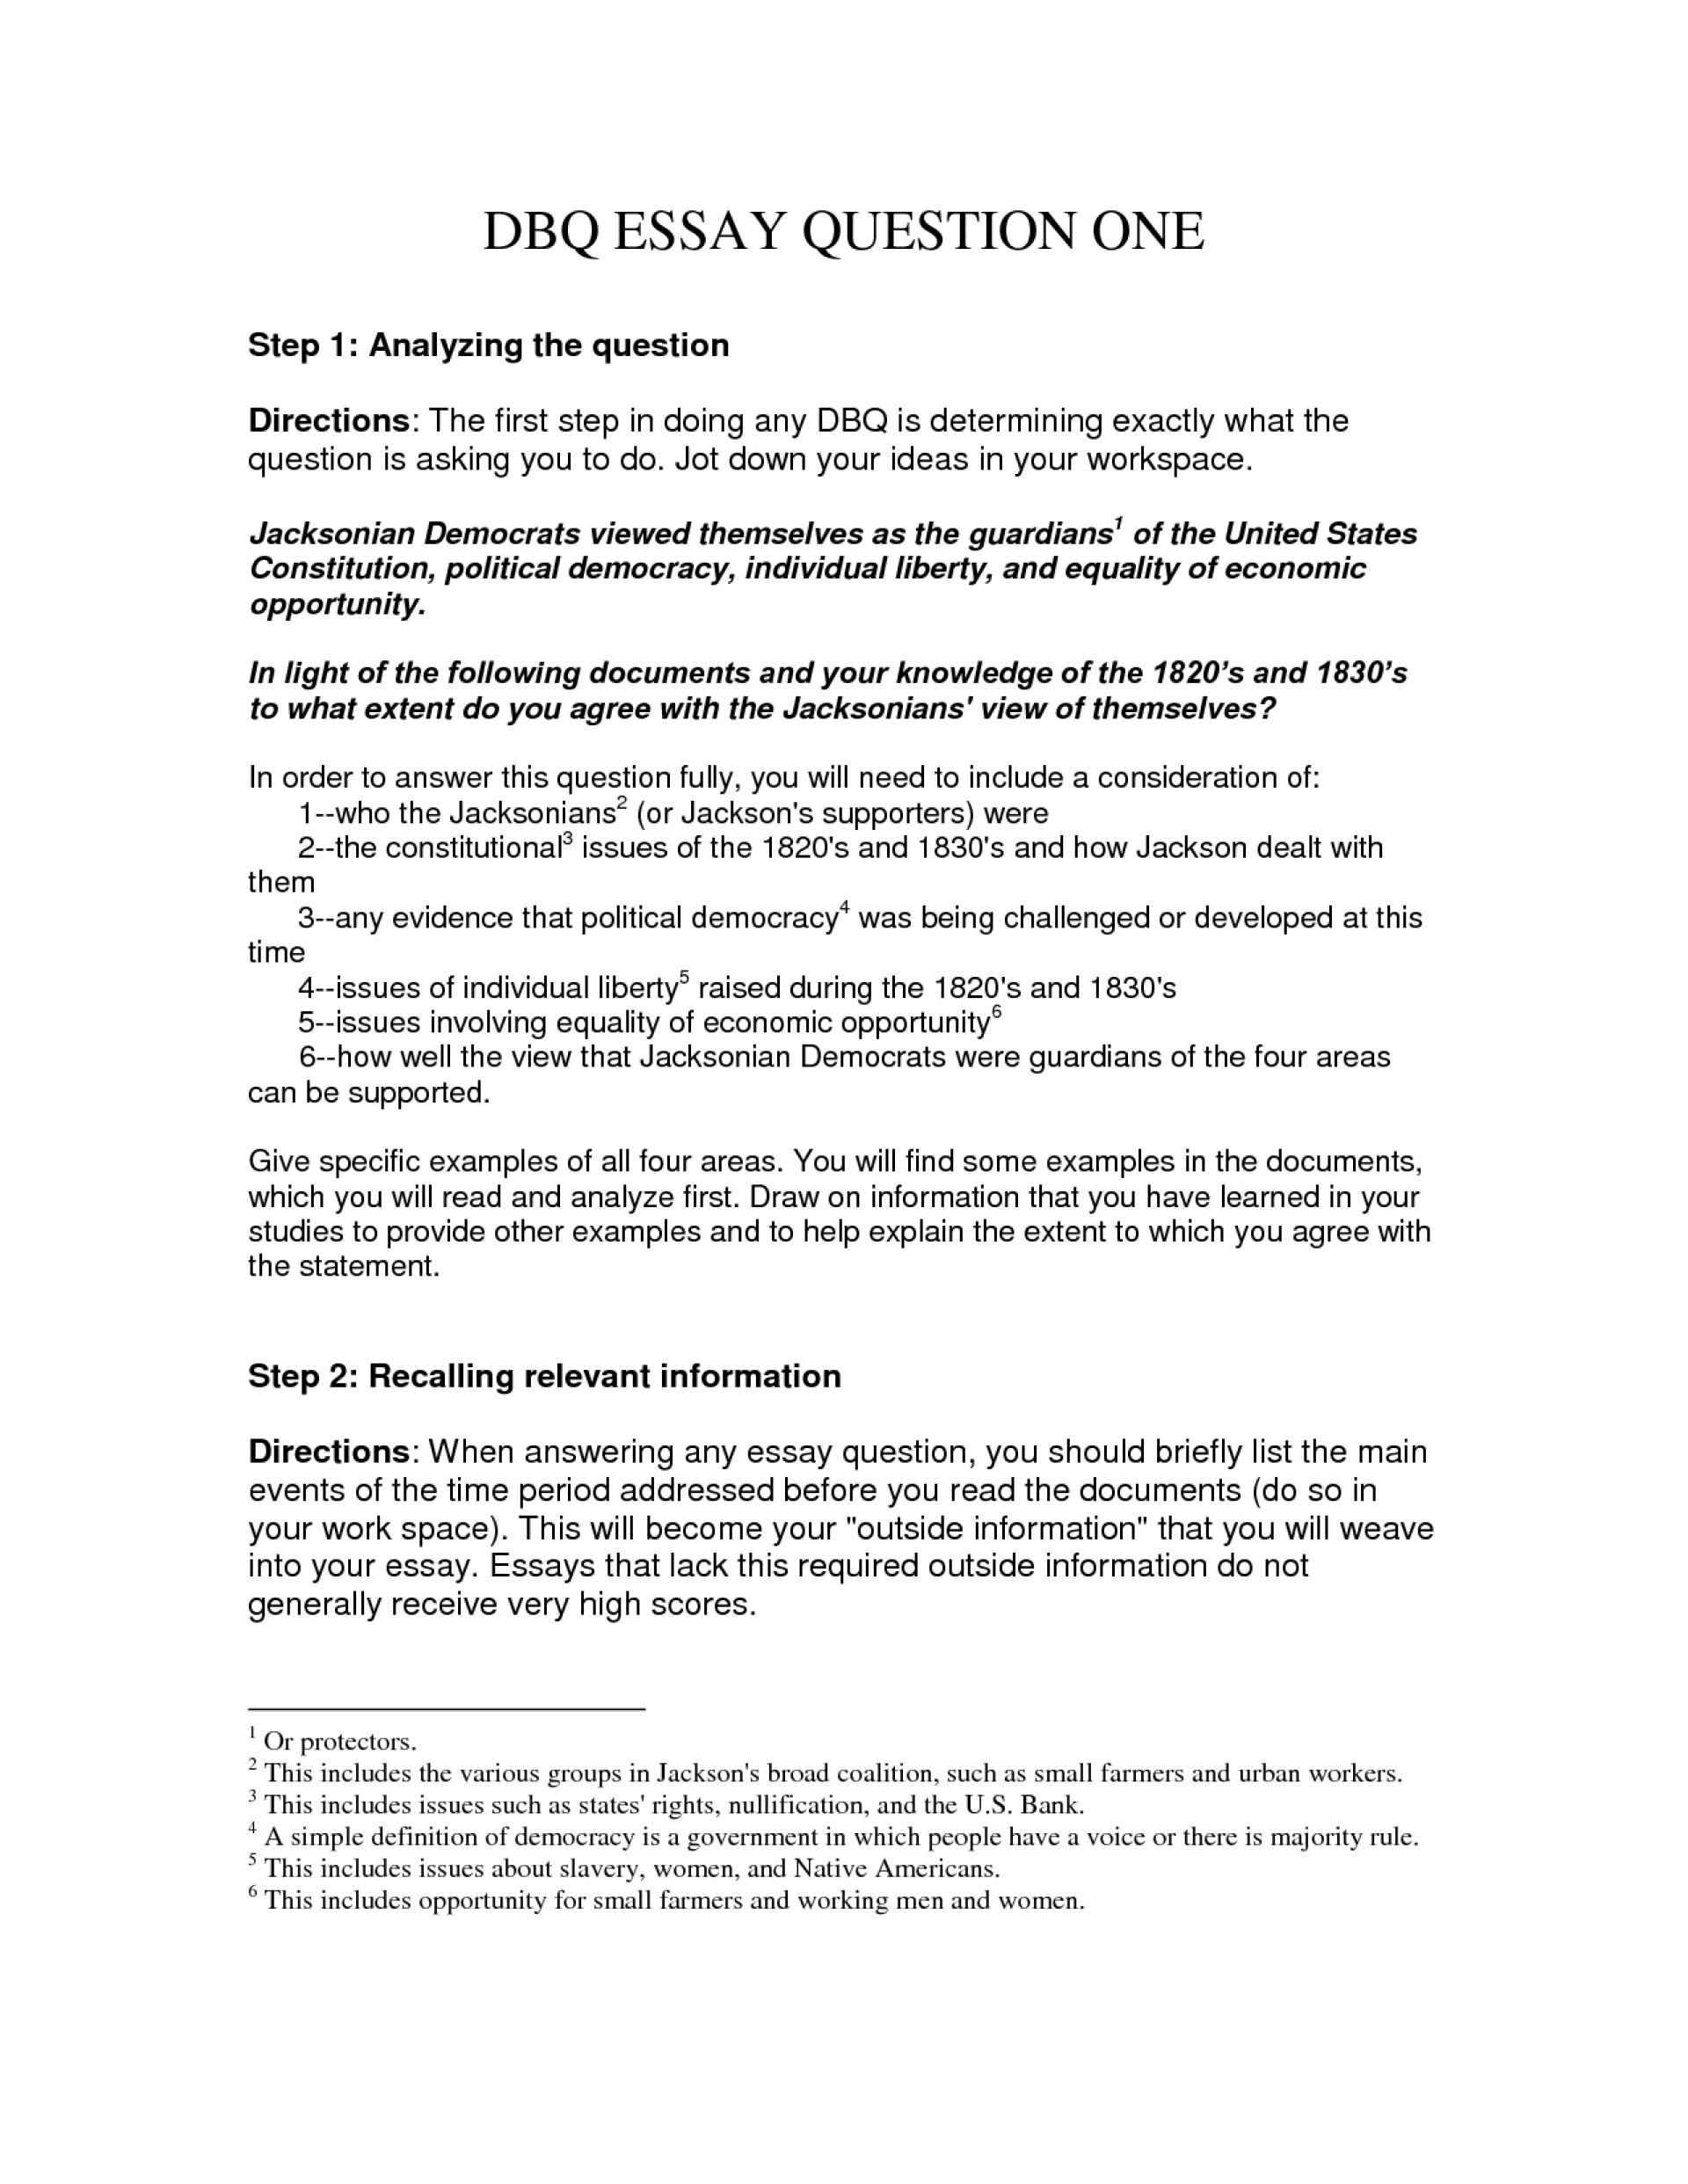 011 Essay Example Dbq Question One What Is Top Beauty Short Inner Real 1920